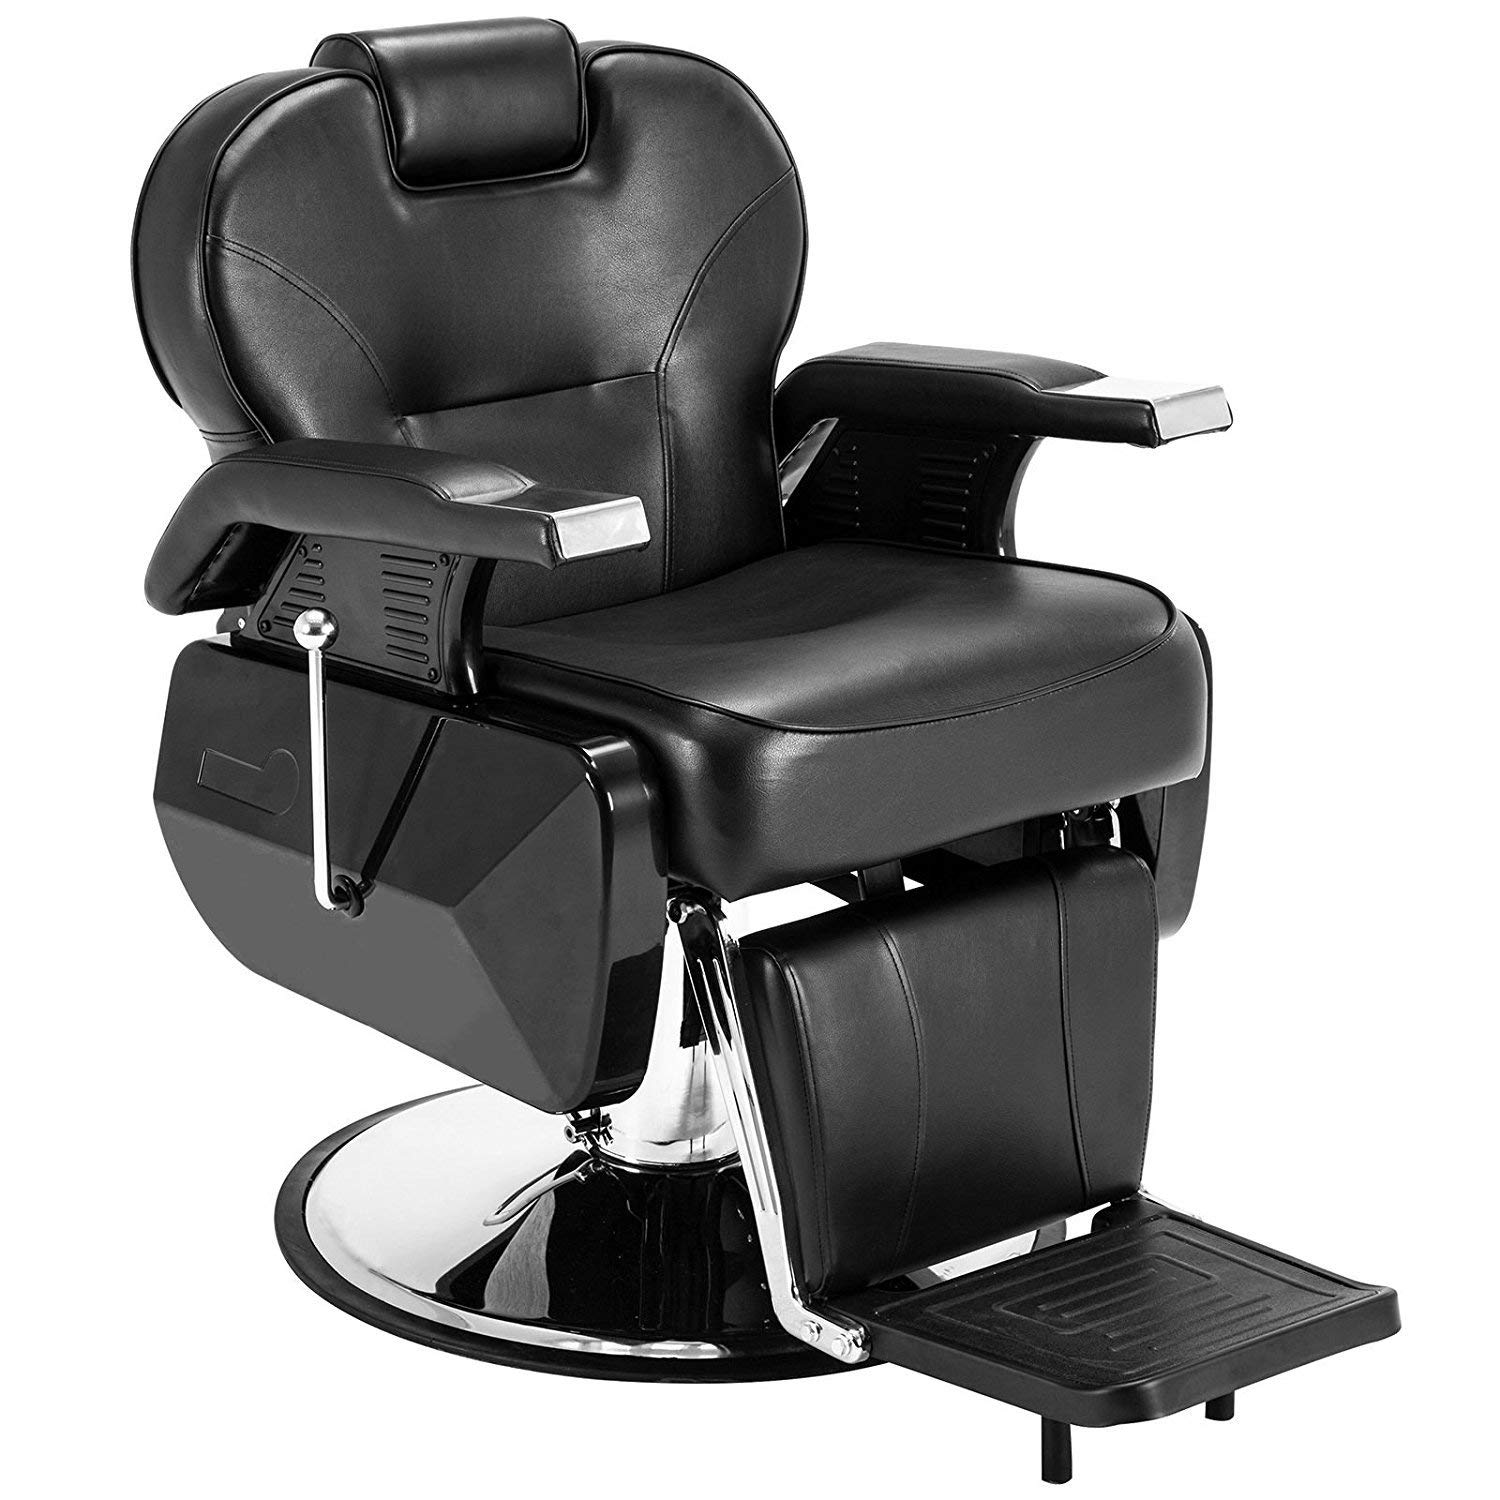 ARTIST HAND All Purpose Hydraulic Recline Barber Chair